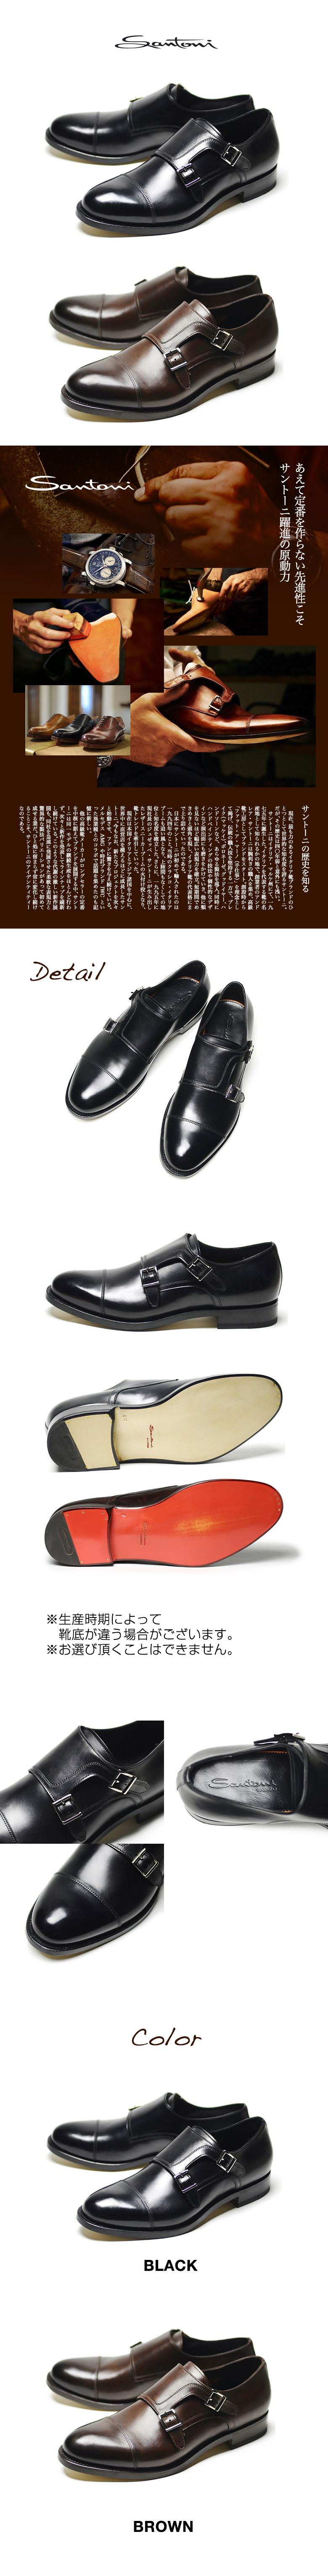 VIAJERO HONTEN  Men Goodyear OSCAR leather shoes made in サントーニ ... 9f36a330276